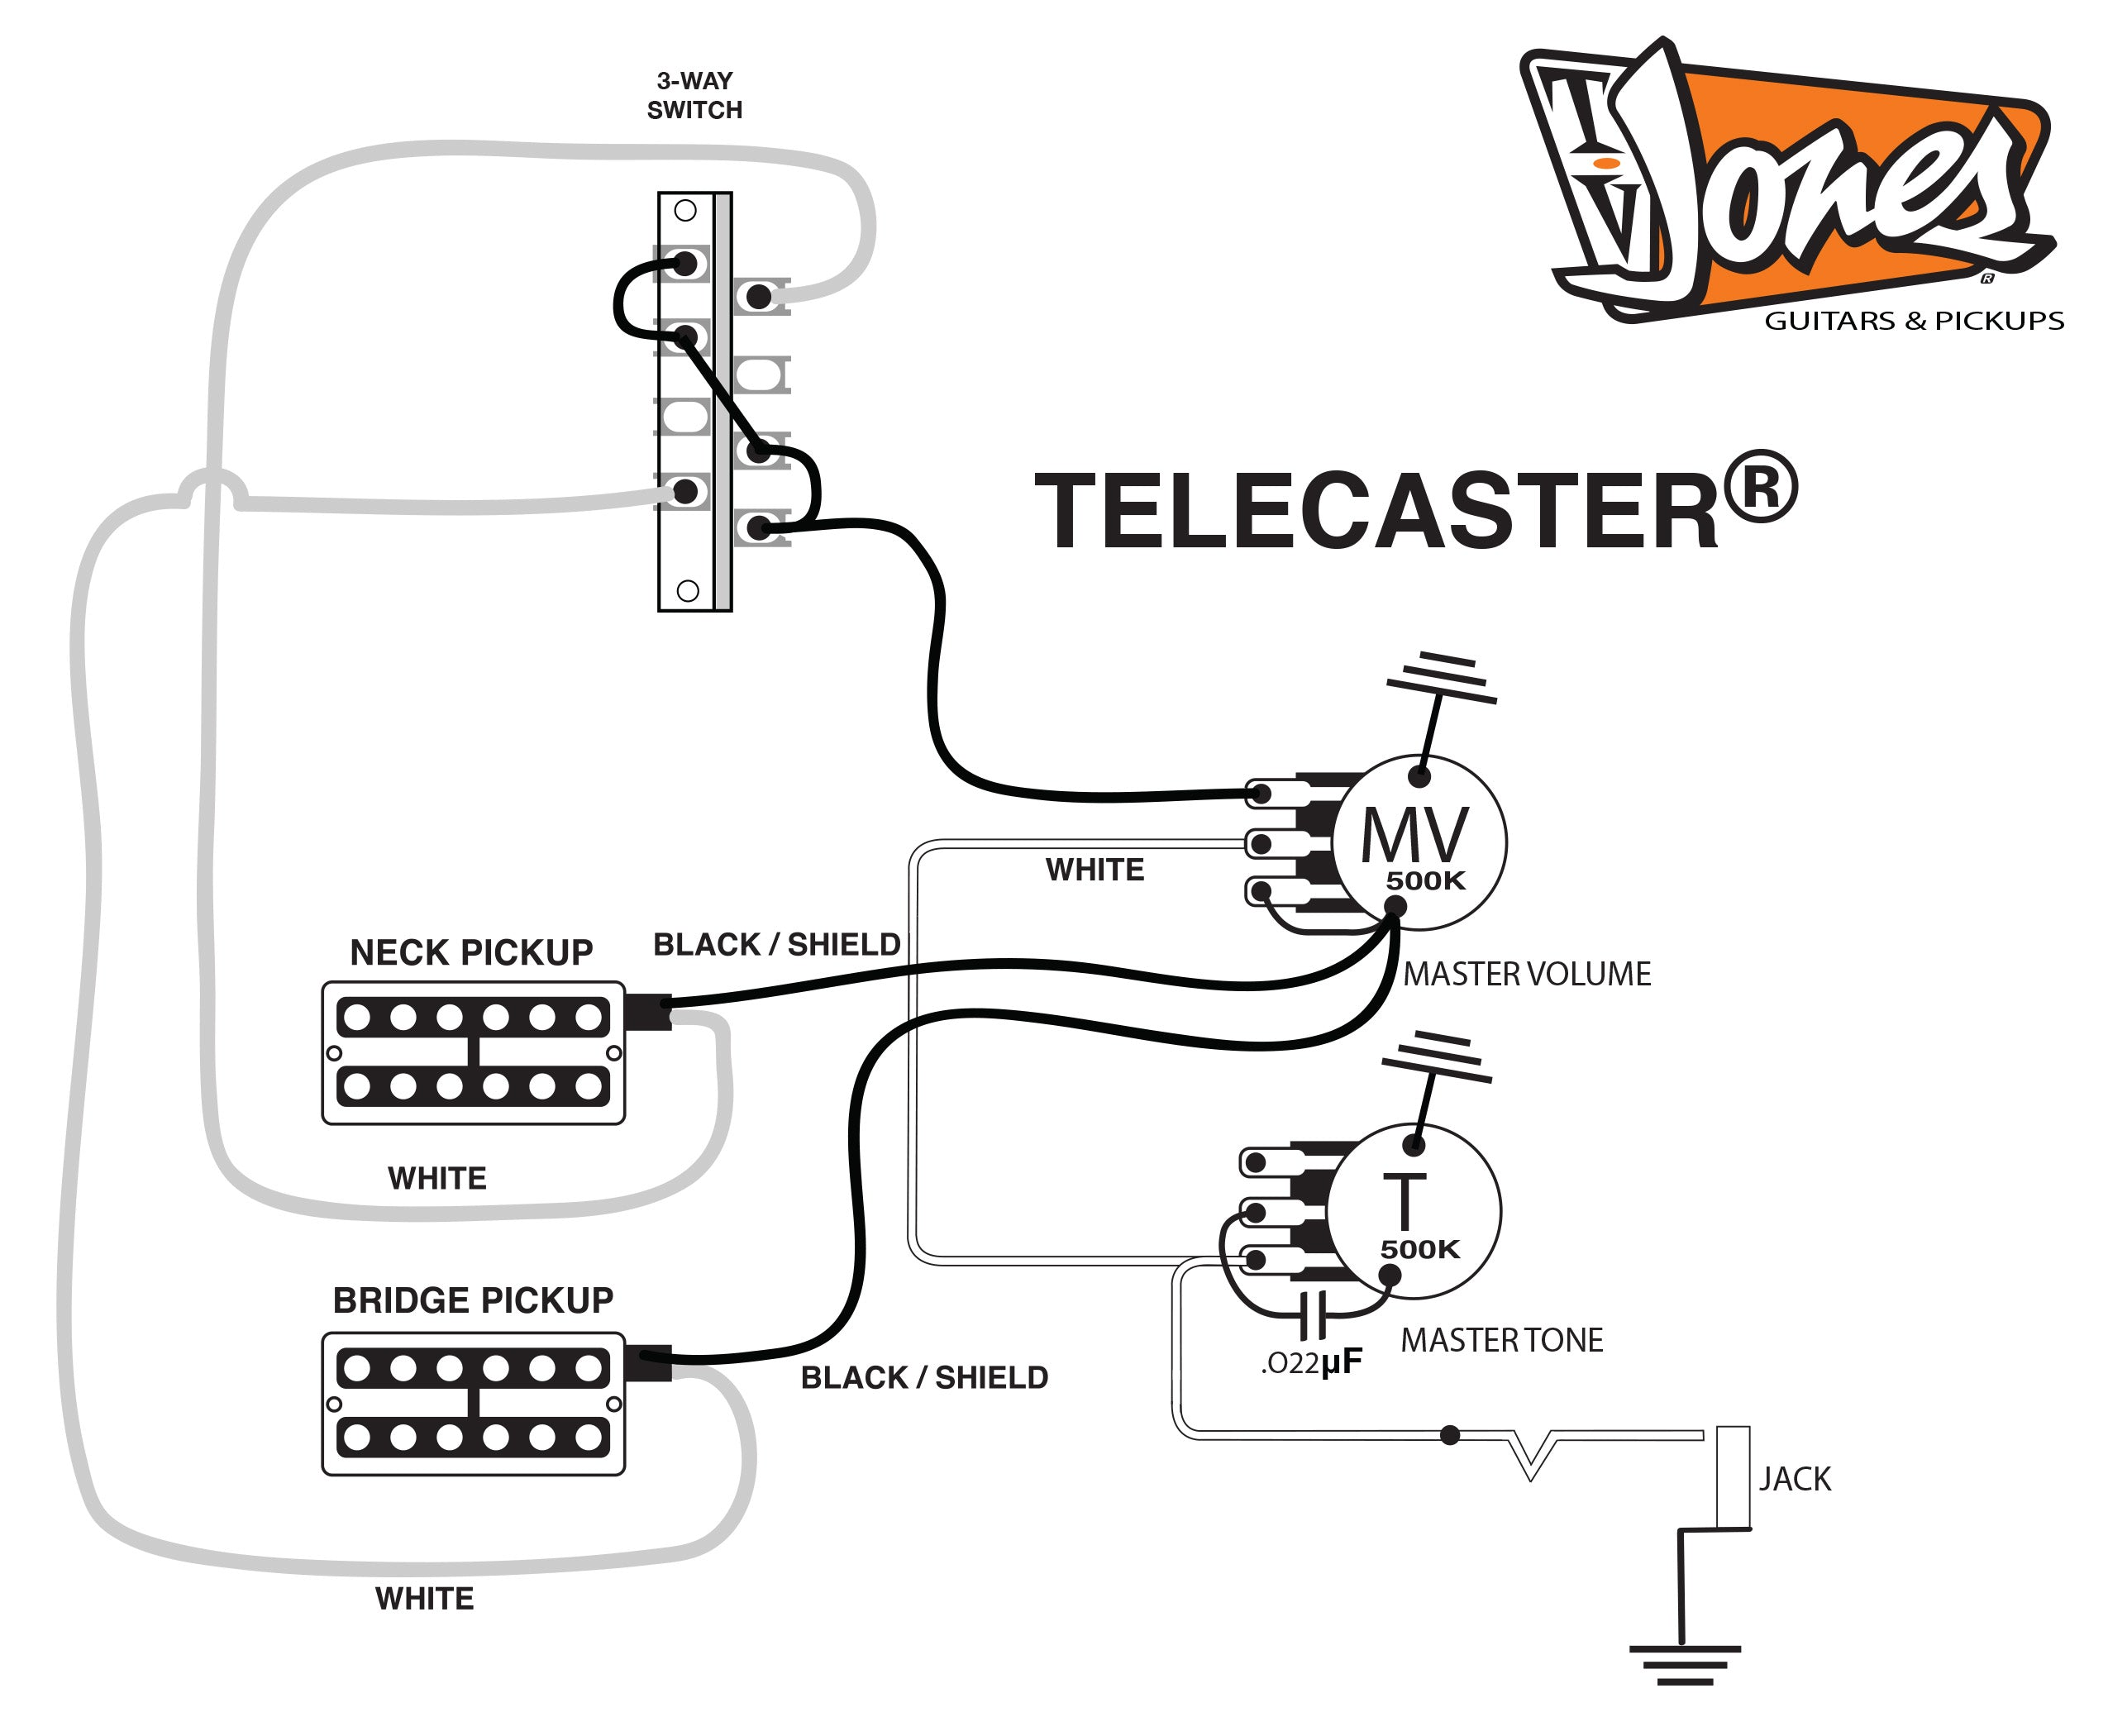 Tv Jones Wiring Pots - Wiring Circuit •